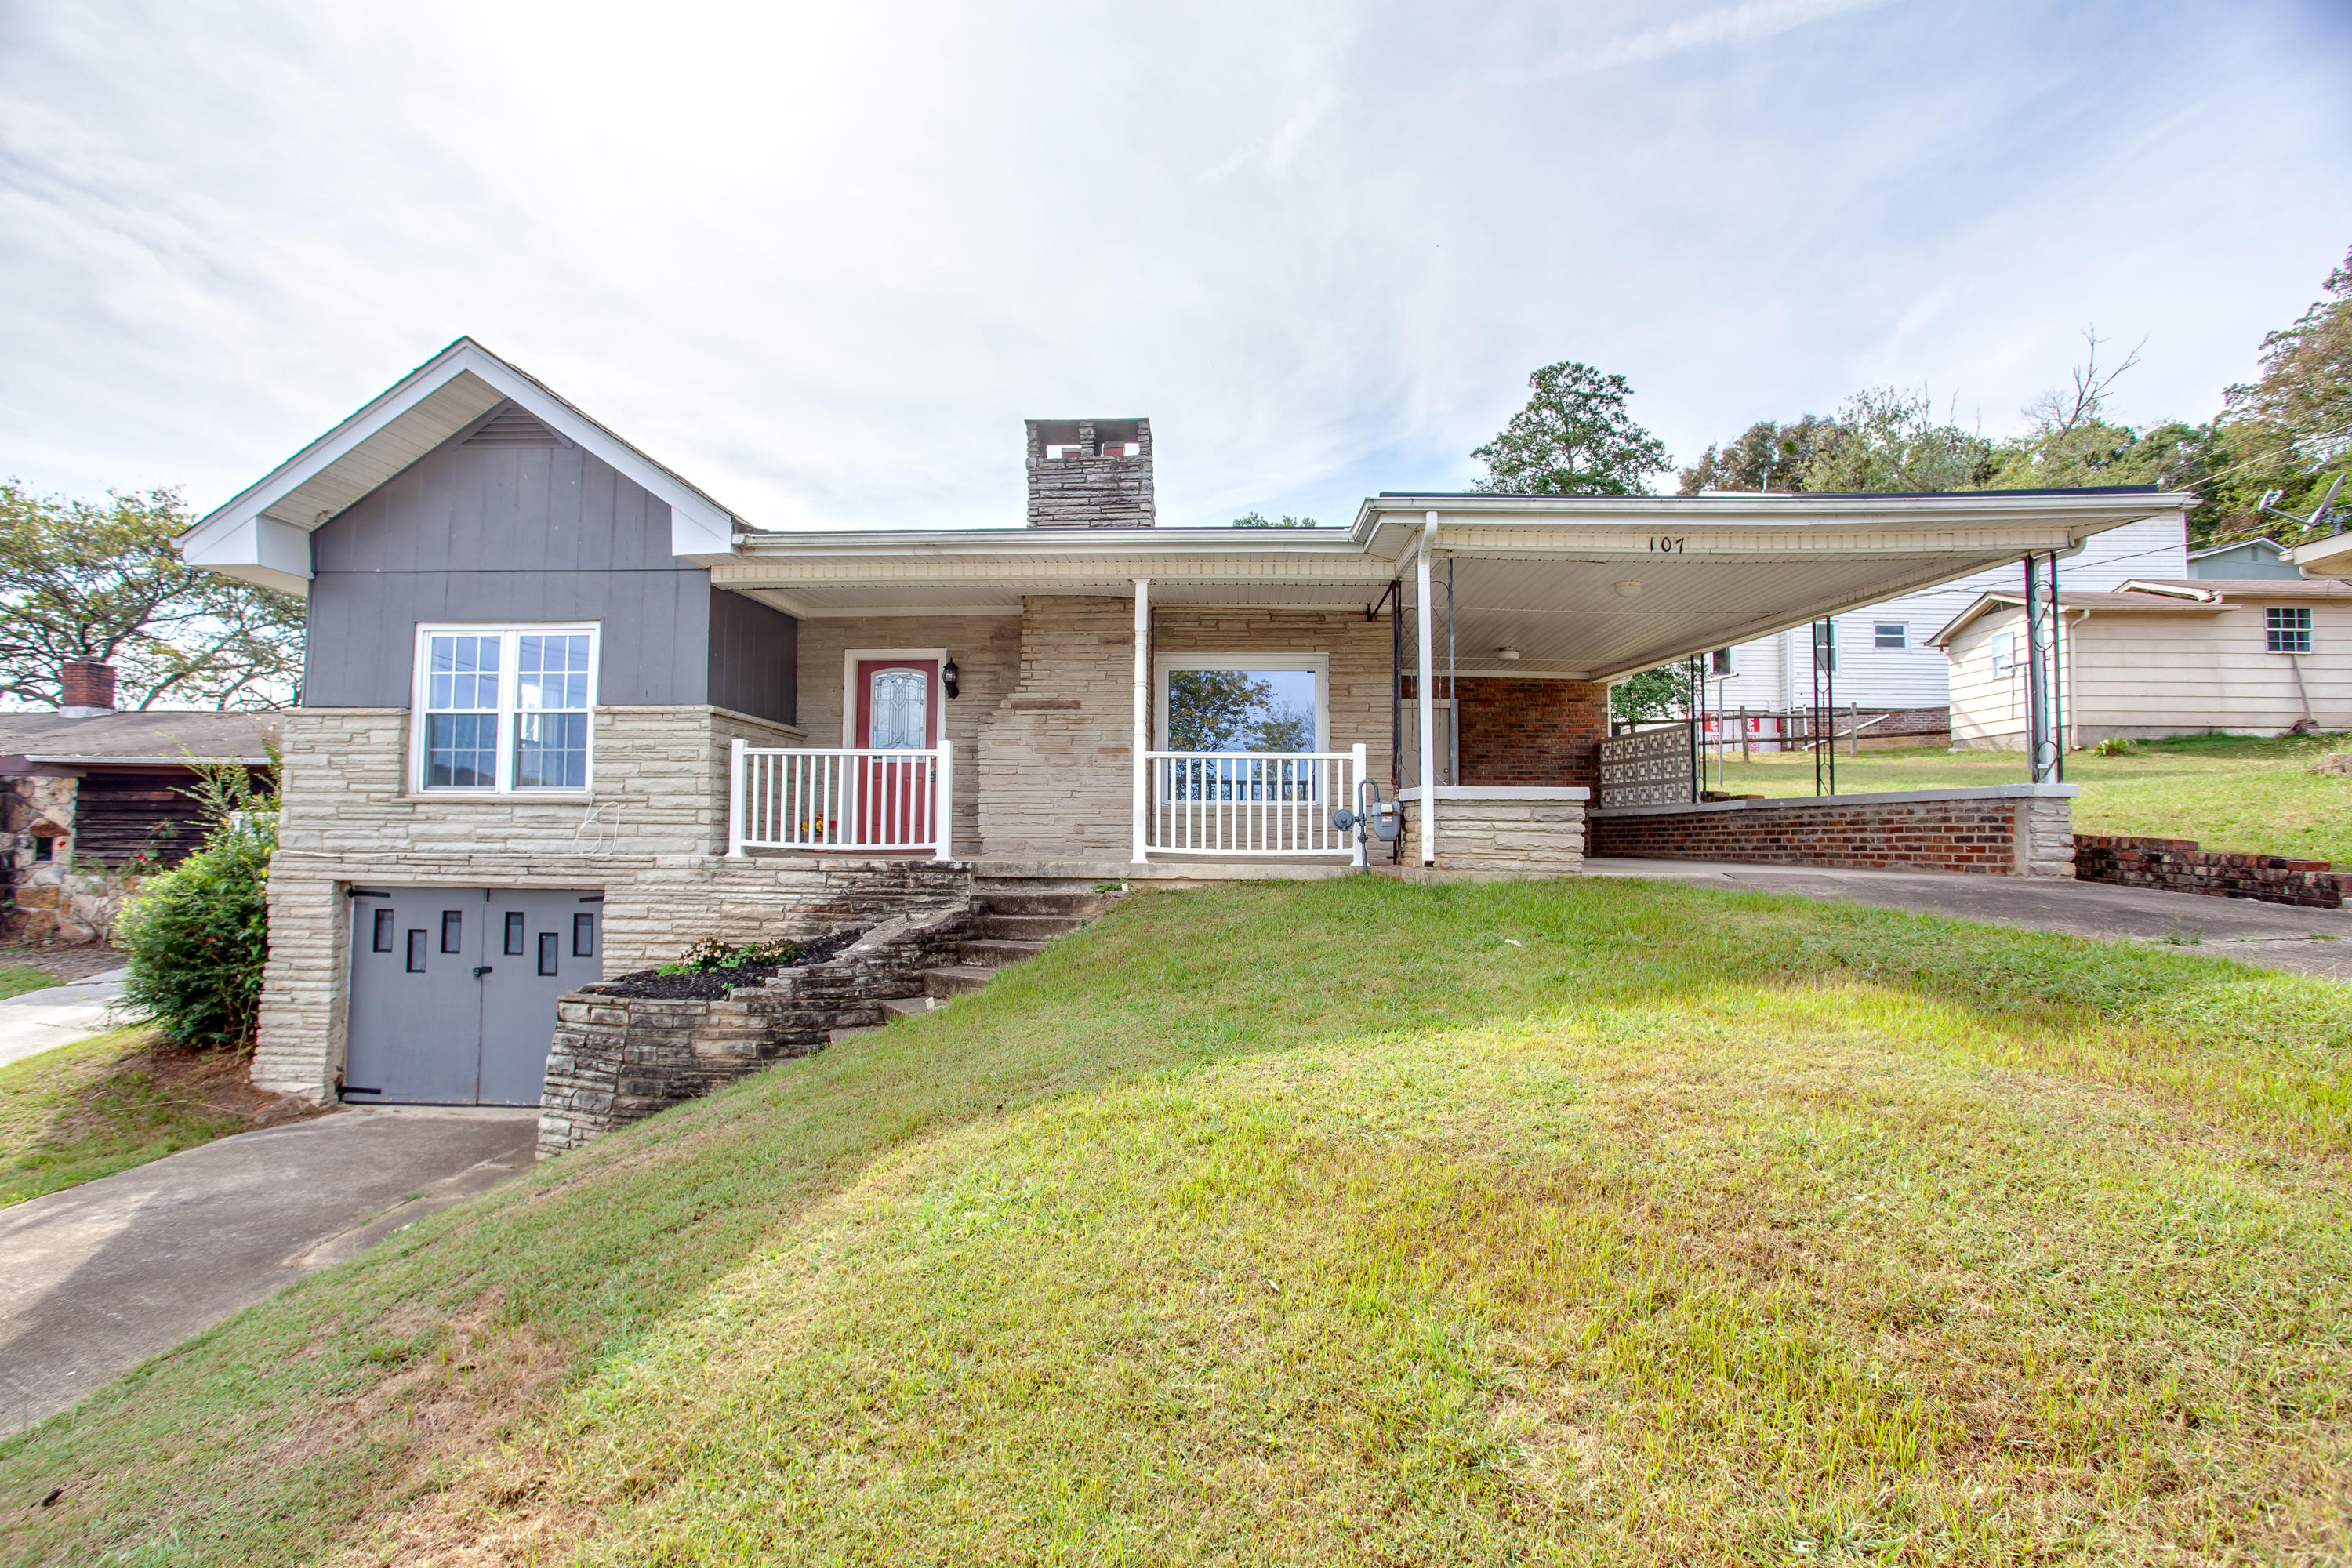 20191012143647888416000000-o Clinton anderson county homes for sale